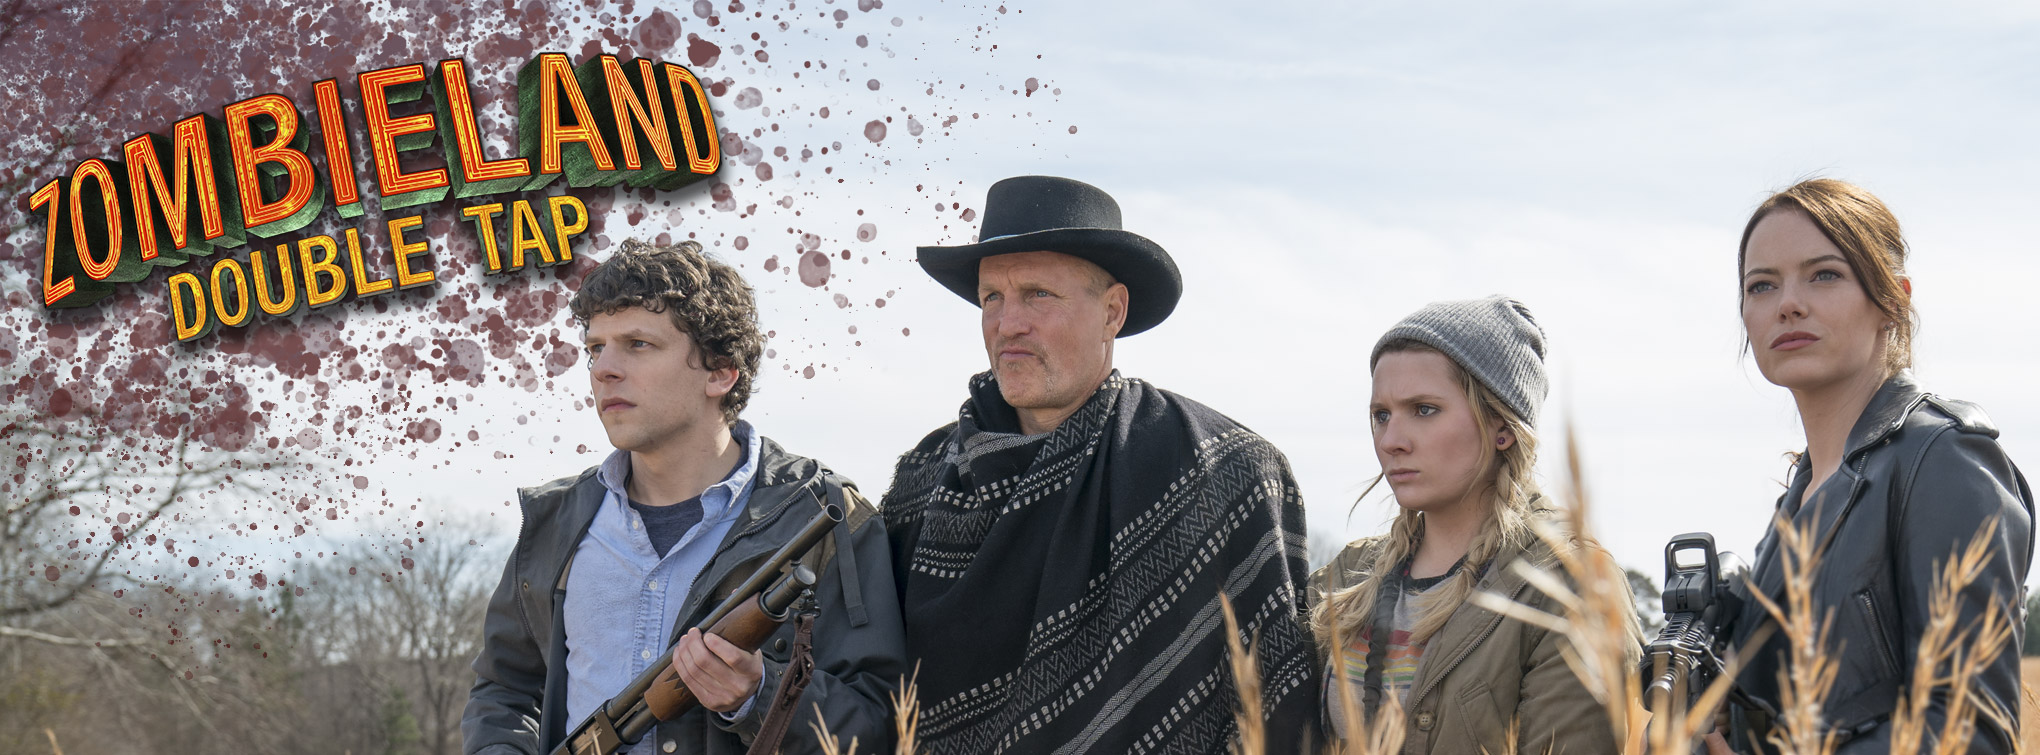 Slider image for Zombieland: Double Tap